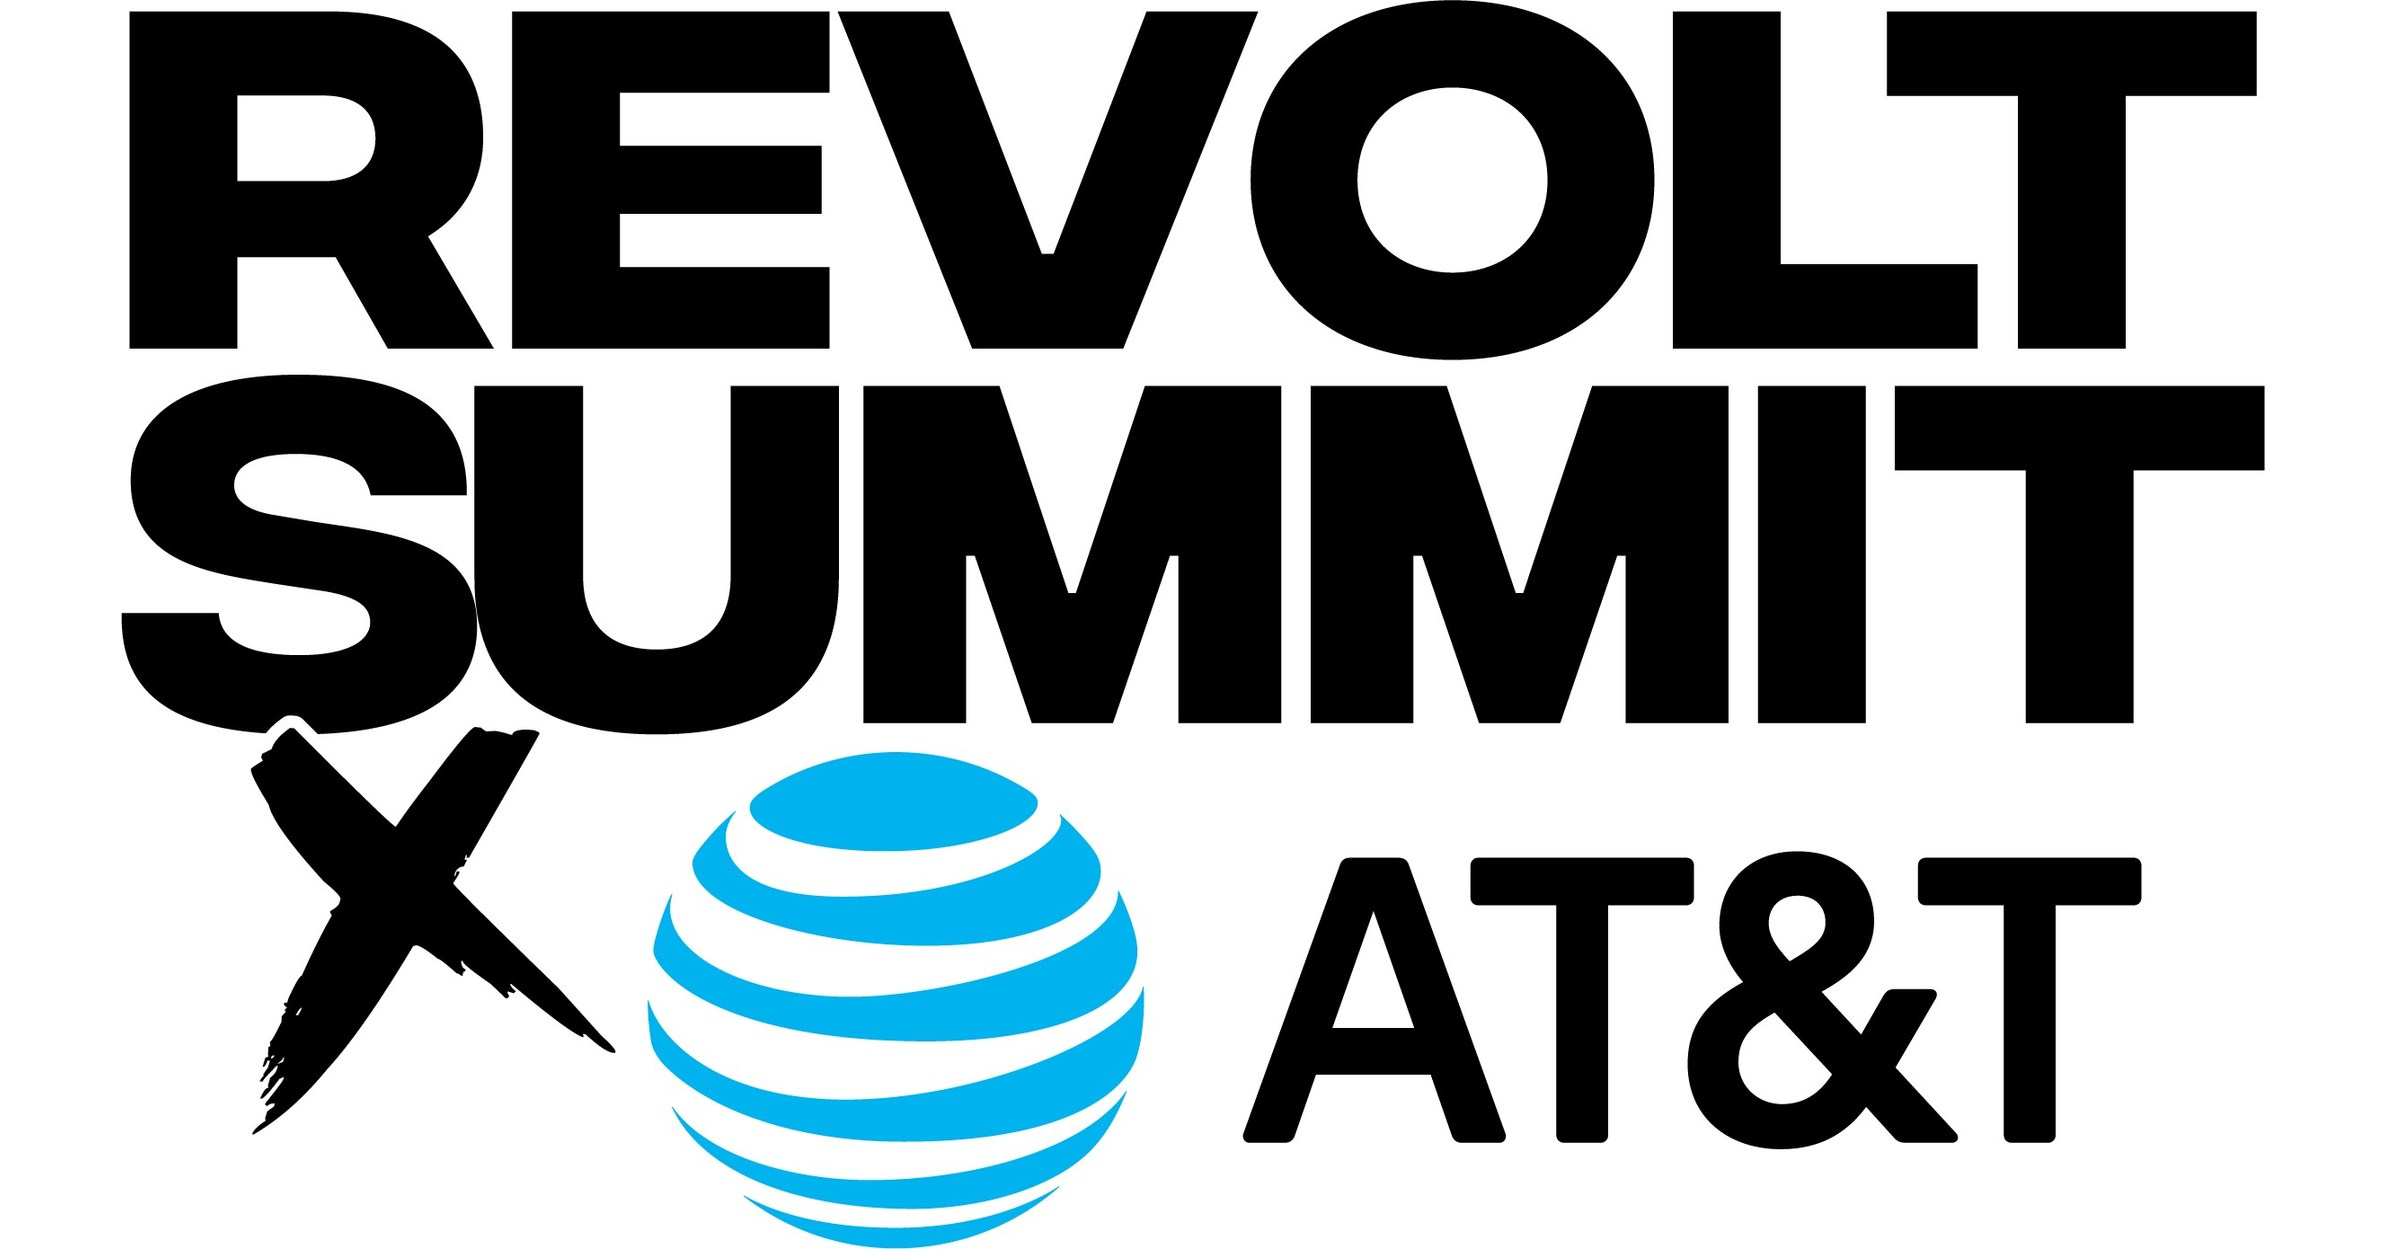 REVOLT Summit x AT&T Announce 2020 Programming Designed To Empower And Inspire Next Generation Of Black Leaders